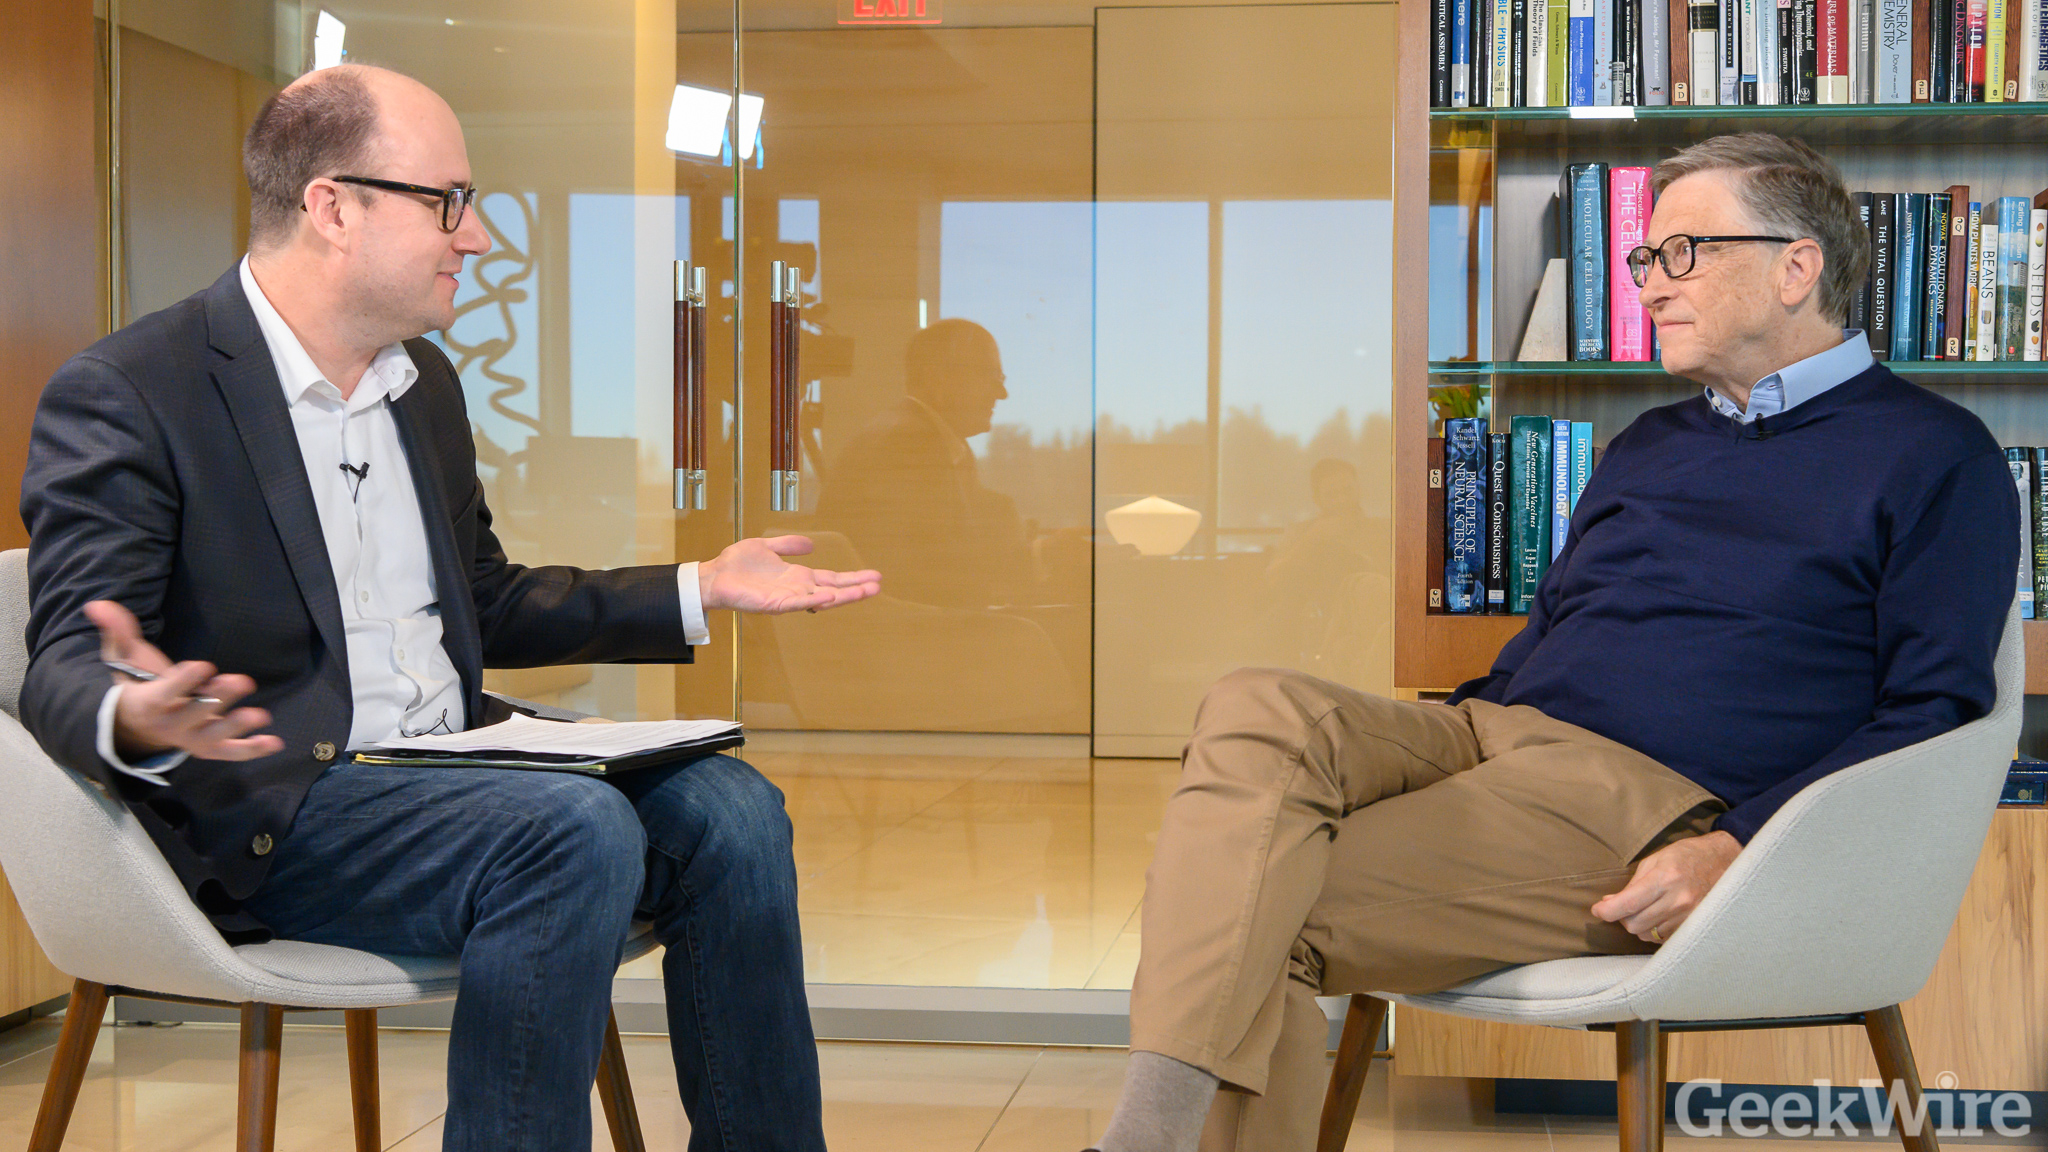 Full interview: Bill Gates on climate change, Paul Allen, nationalism and,  of course, hamburgers - GeekWire